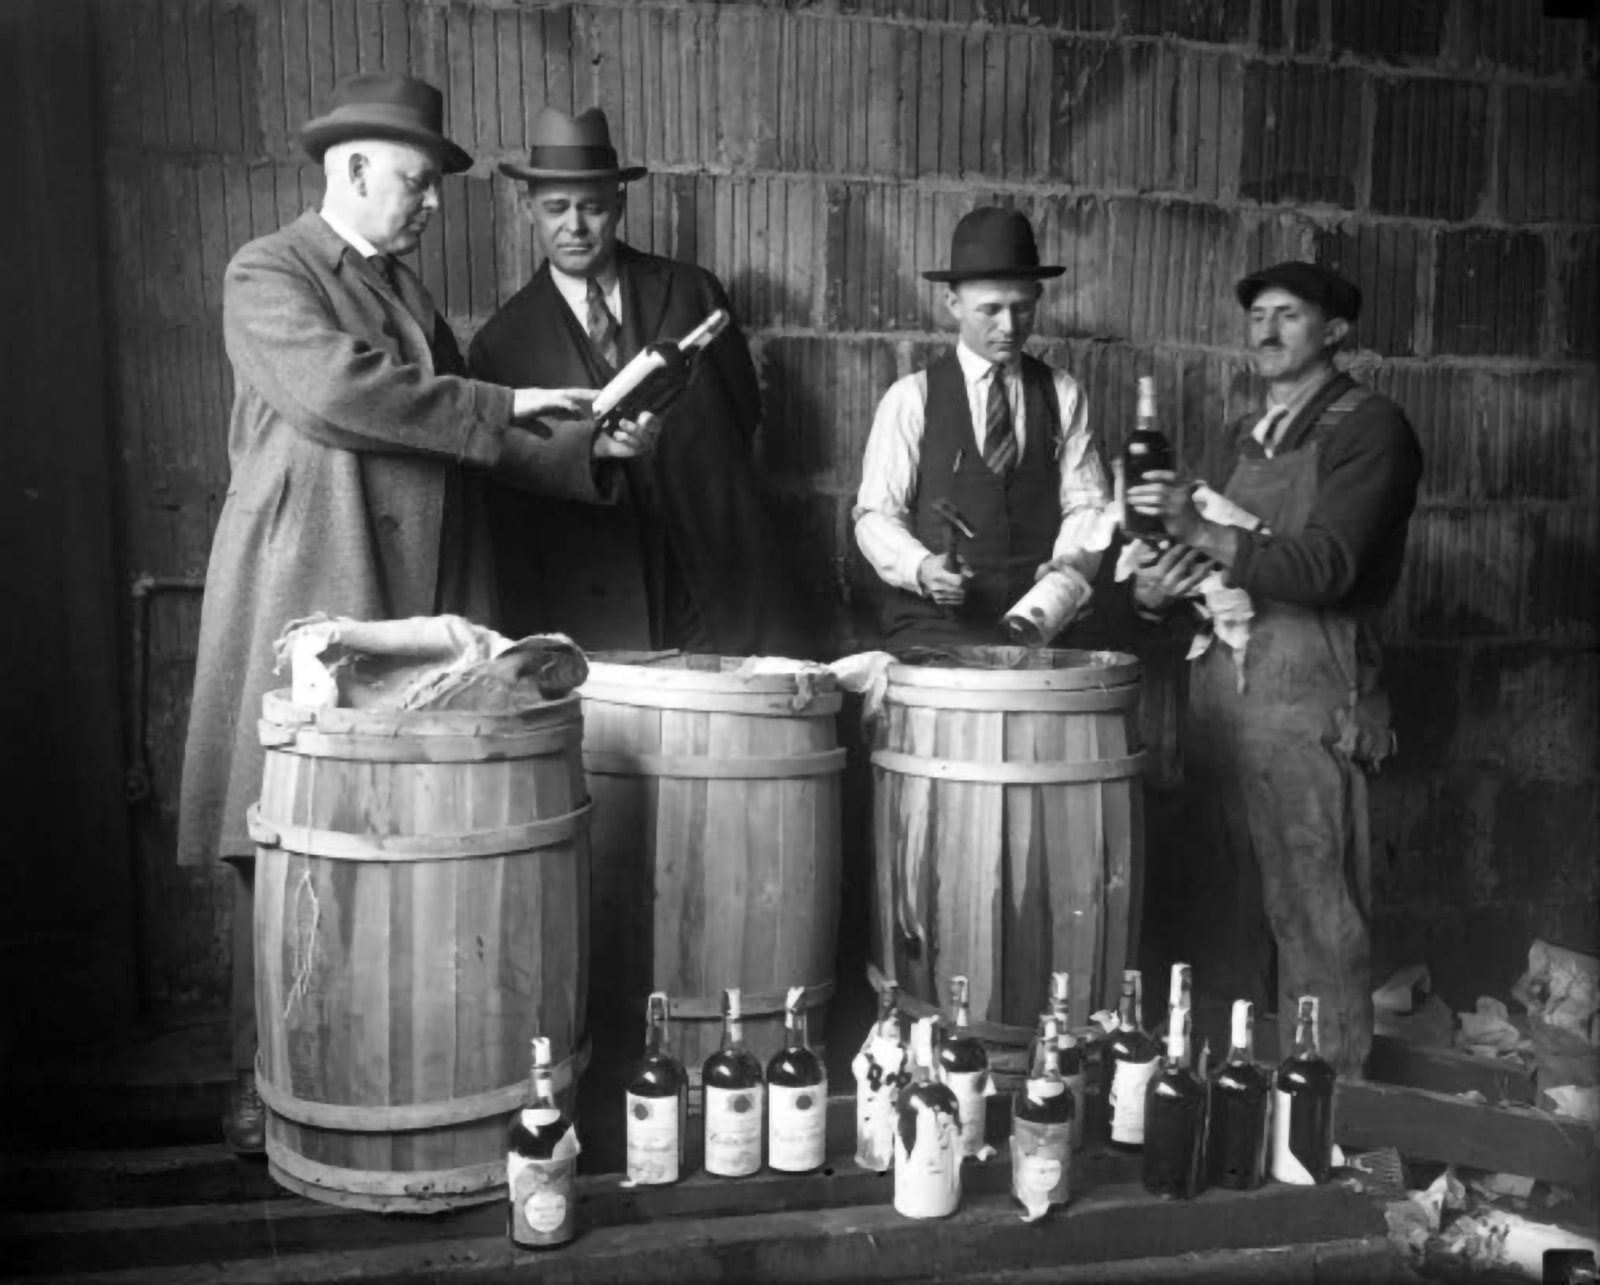 A Prohibition liquor bust in front of a telephone block masonry wall